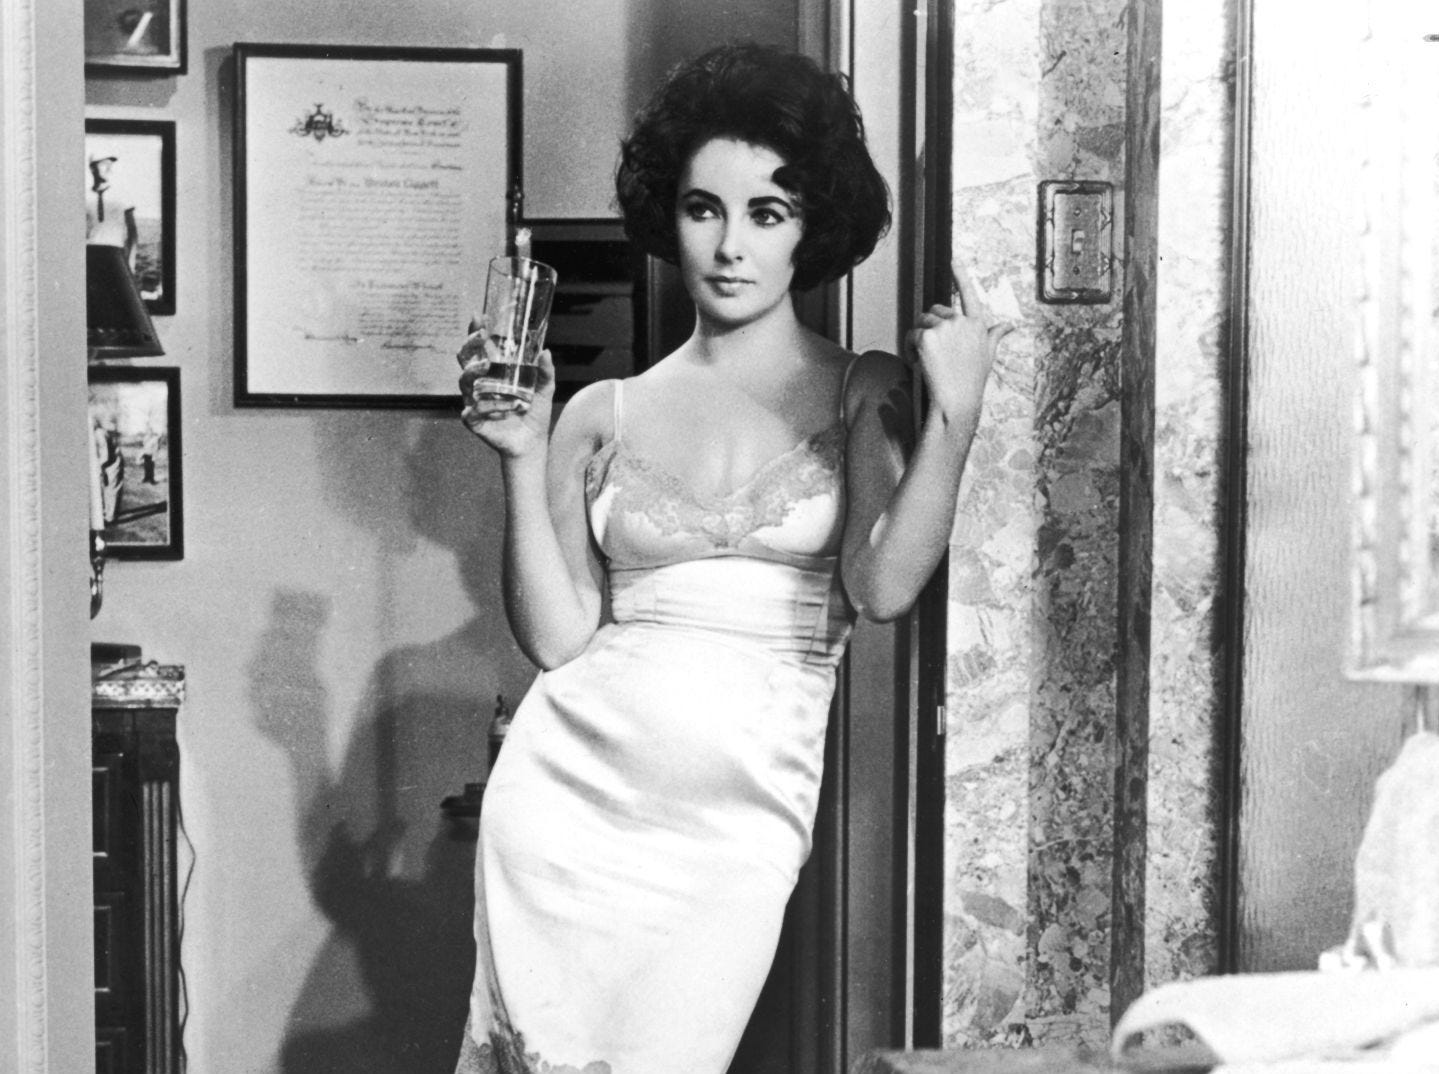 Elizabeth Taylor in a slip in 'Butterfield 8' from 1961.